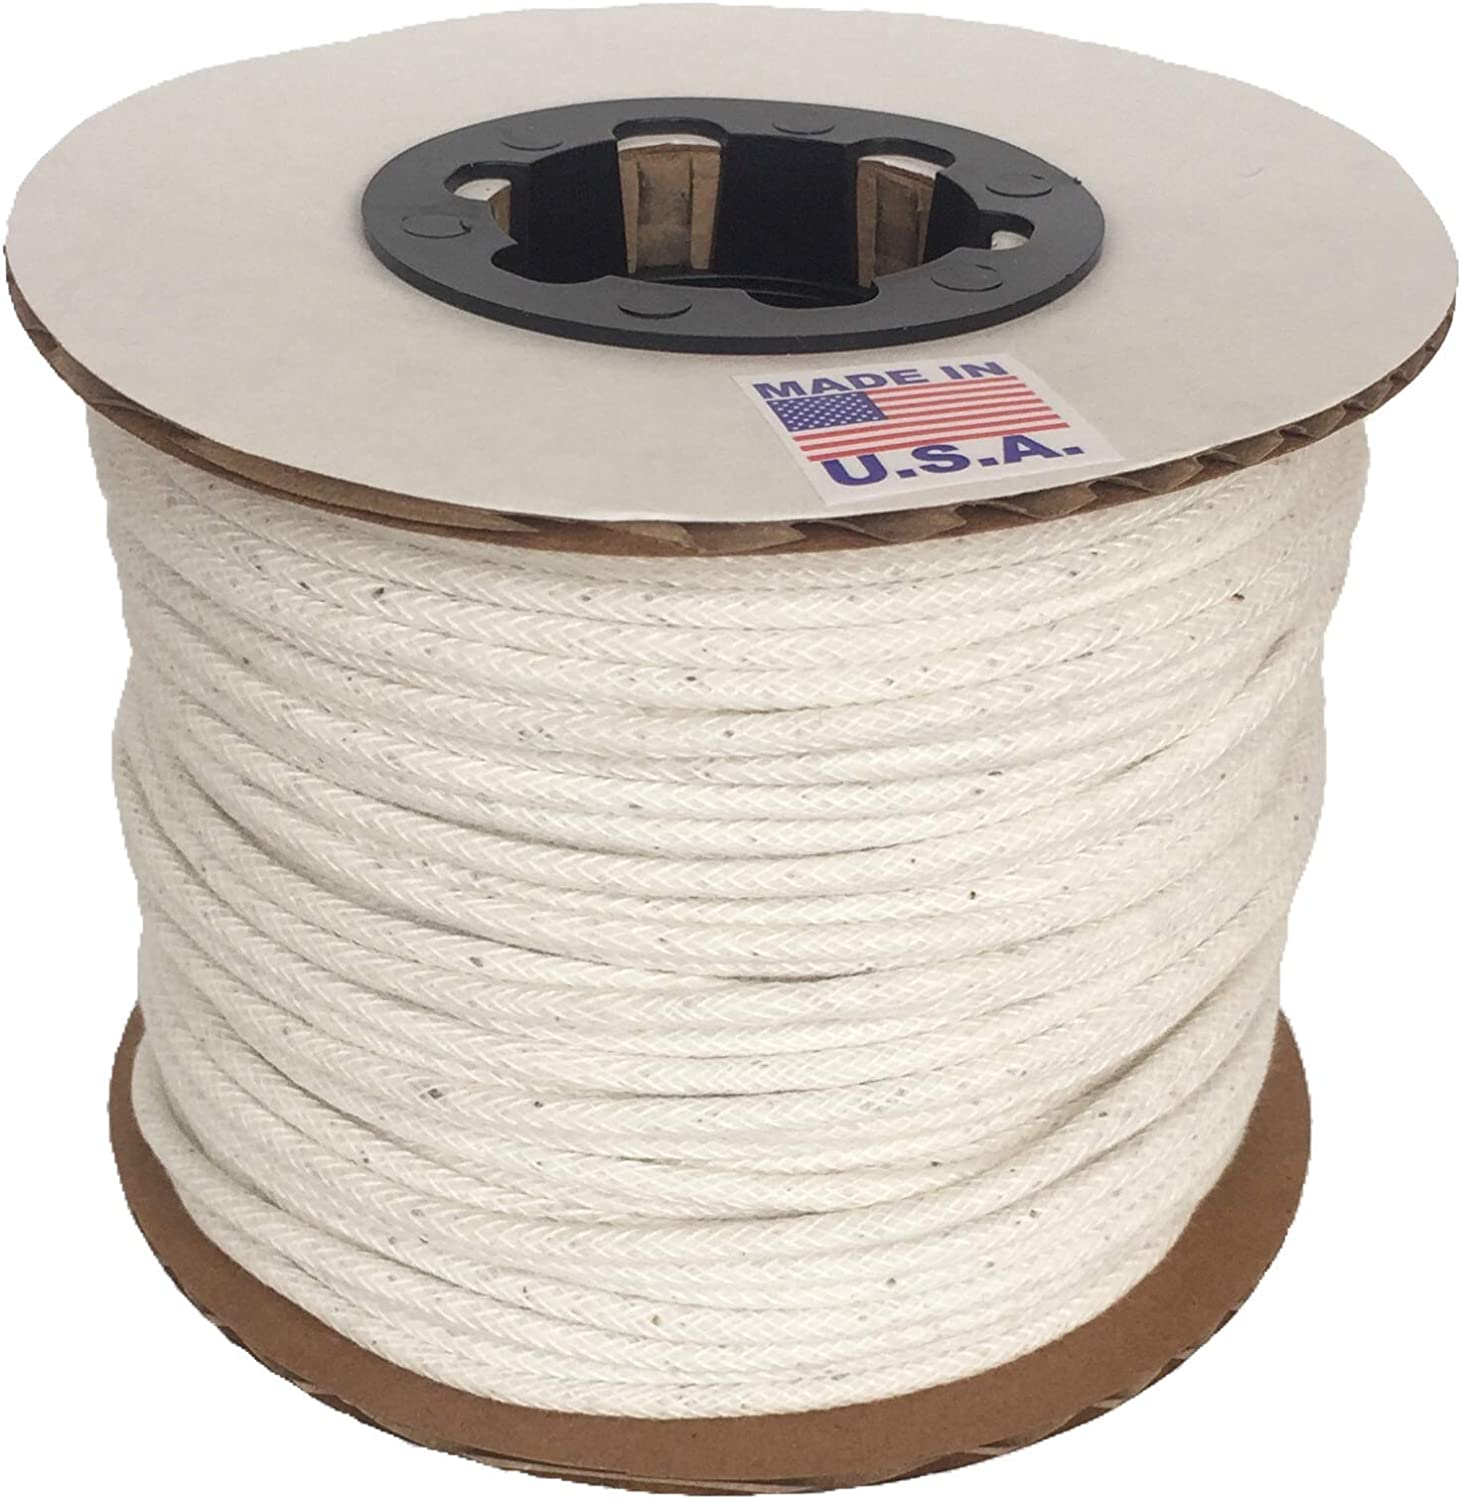 50 metres x 3mm plastic piping cord Upholstery /& car trimming use.